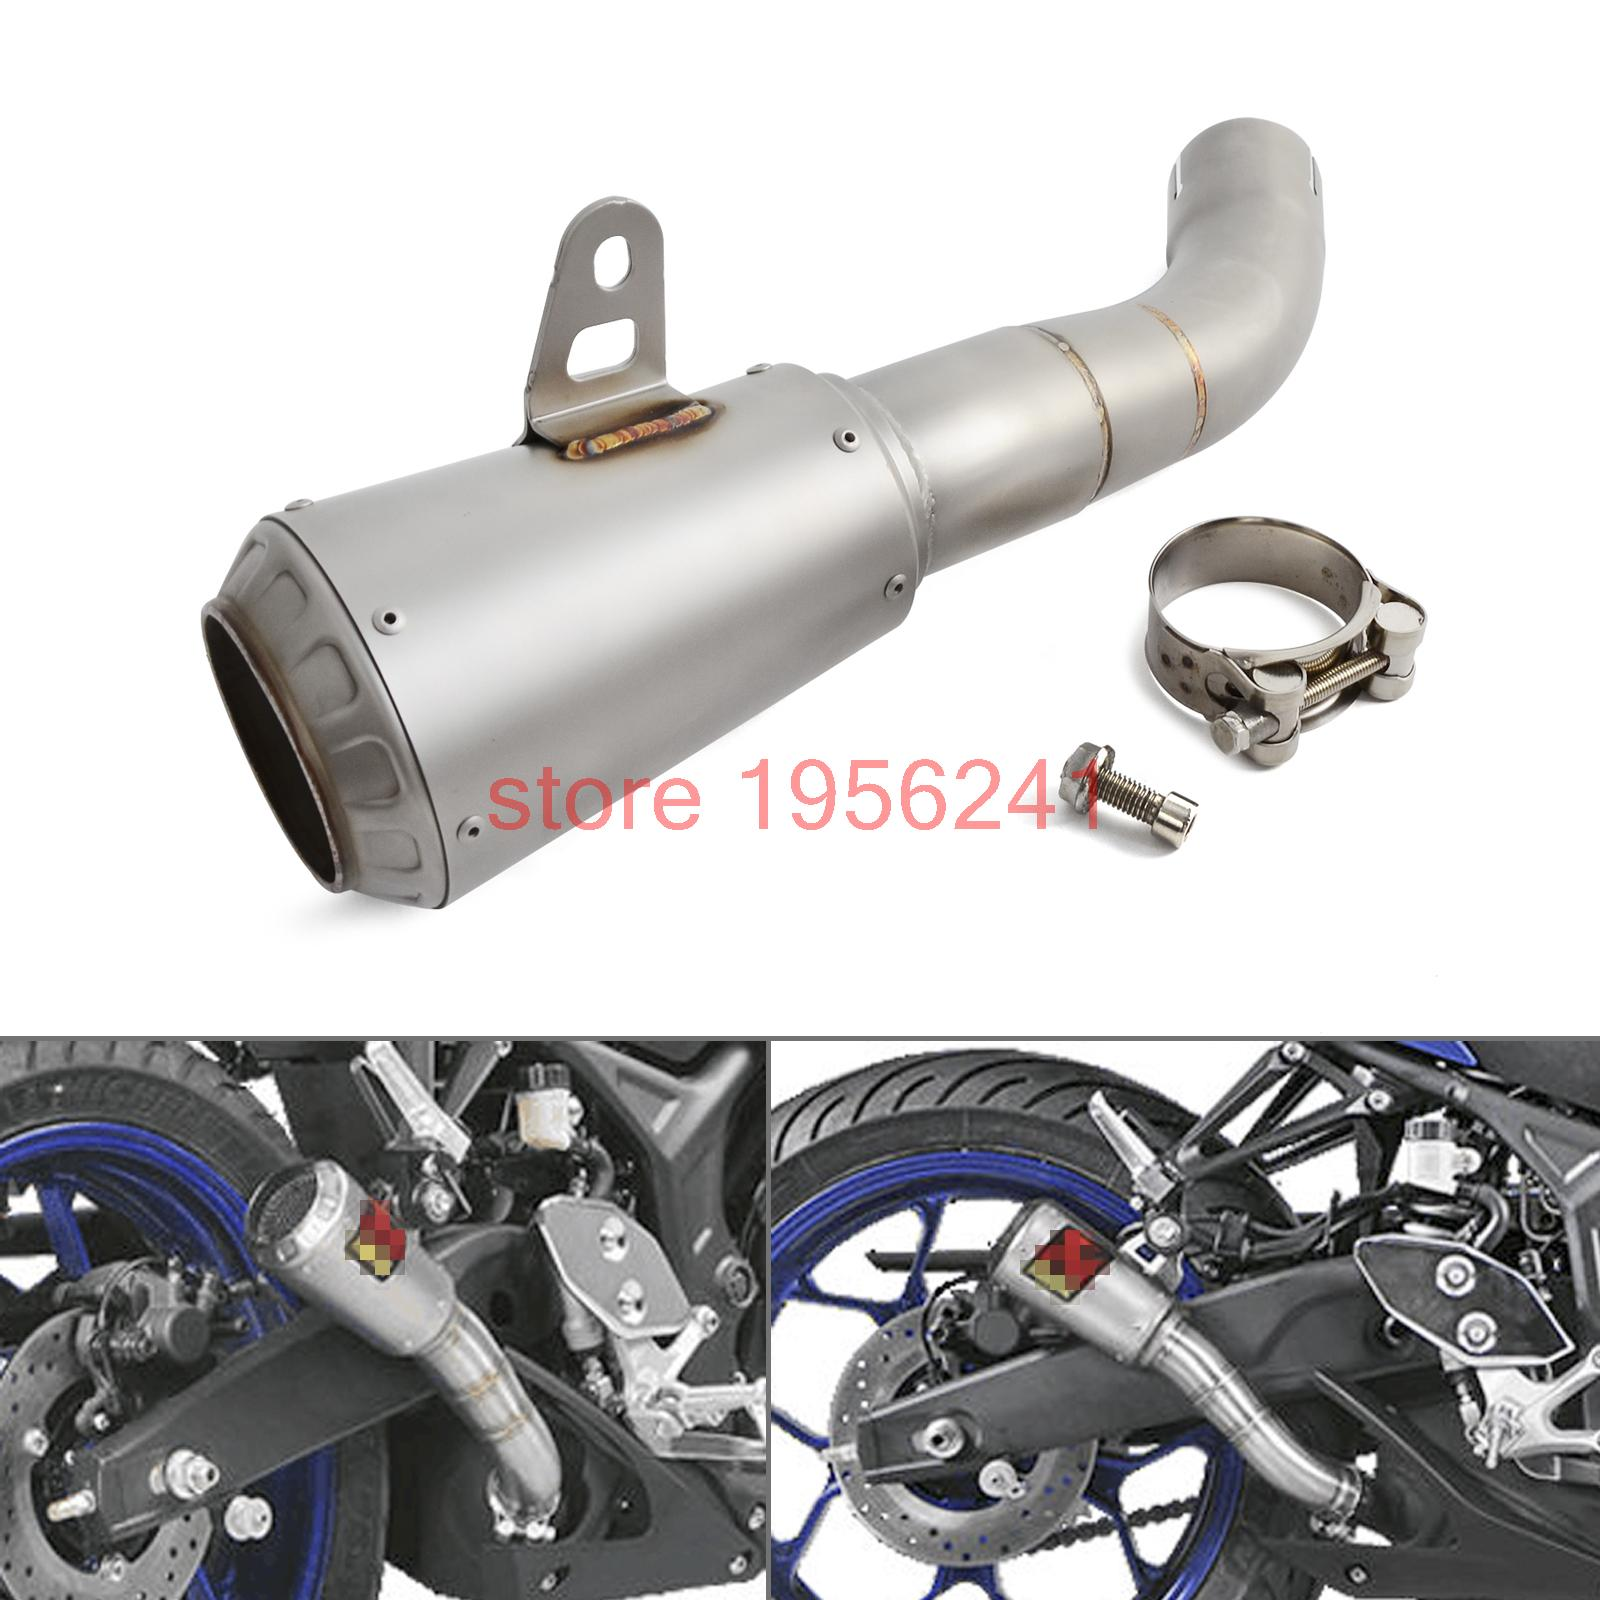 Motorcycle Parts Stainless Steel Slip-On Exhaust For Yamaha YZF-R3 YZF-R25 2015 2016 2017 2018 YZFR3 YZFR25 2014 2015 2016 yzf r3 r25 abs injection fairing kit for yamaha yzfr3 yzfr25 pearl white complete fairings body kit cowling